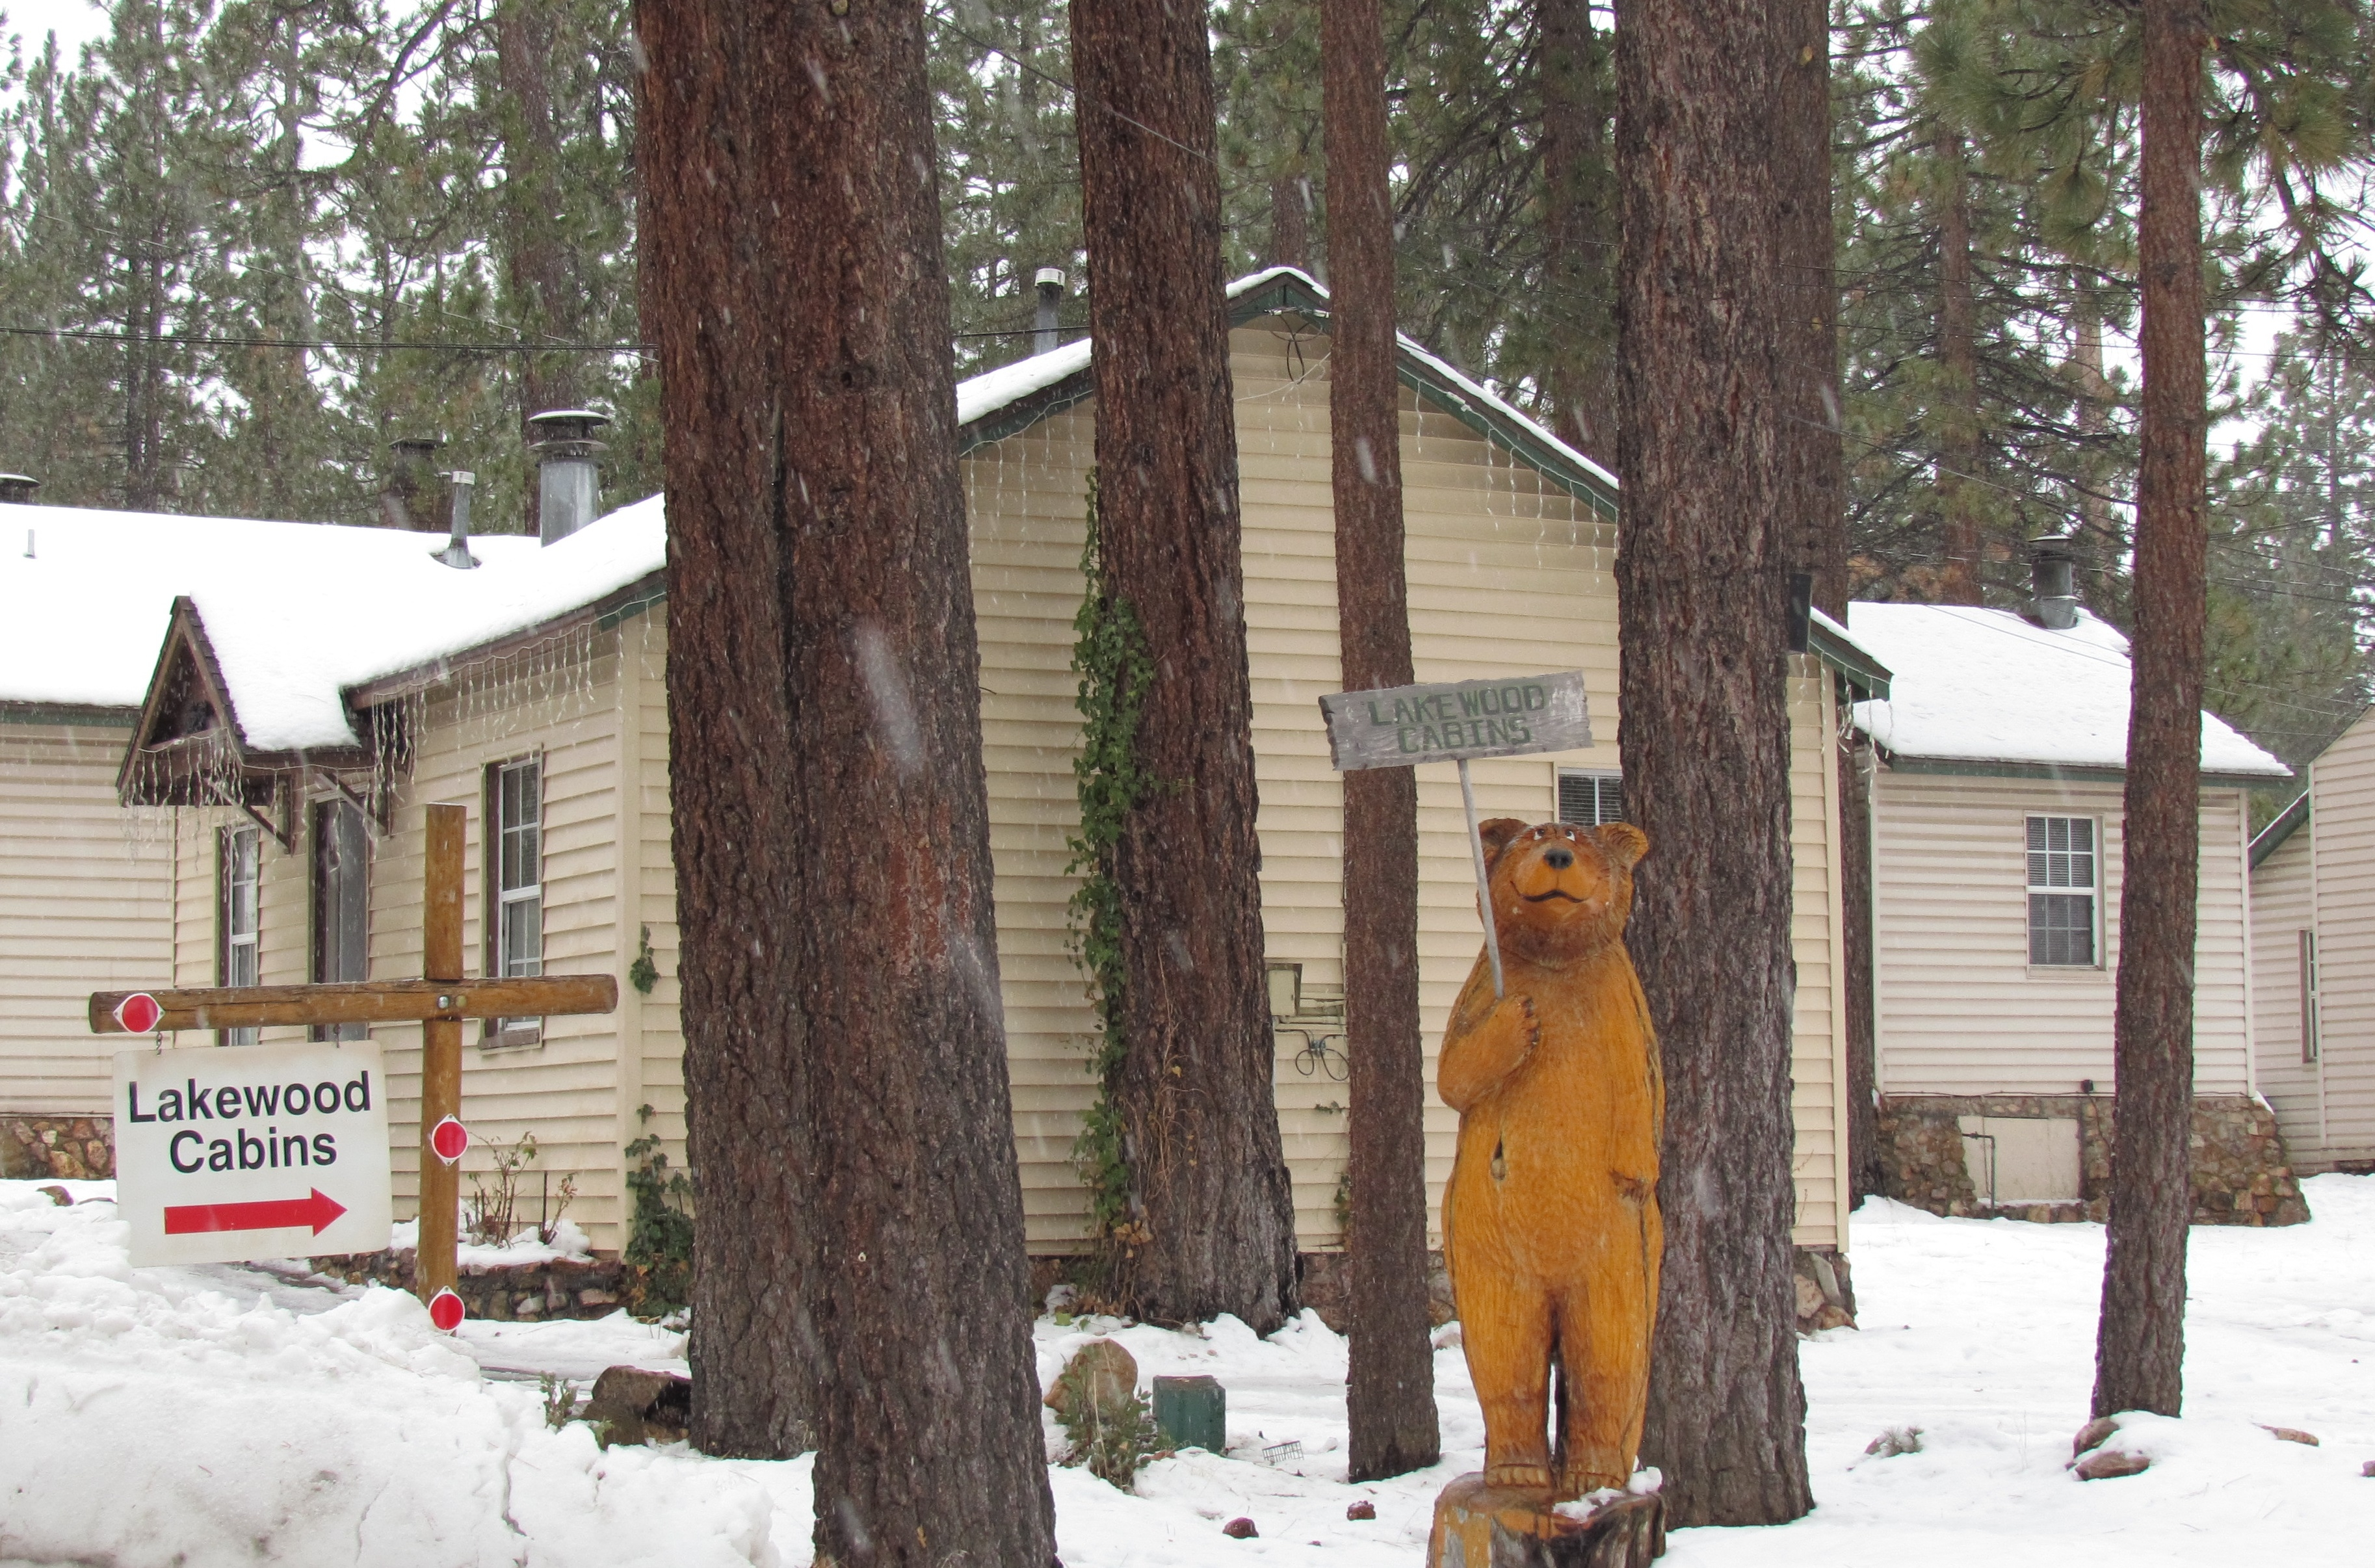 Lakewood cabins big bear lake california ca for Cabins big bear lake ca